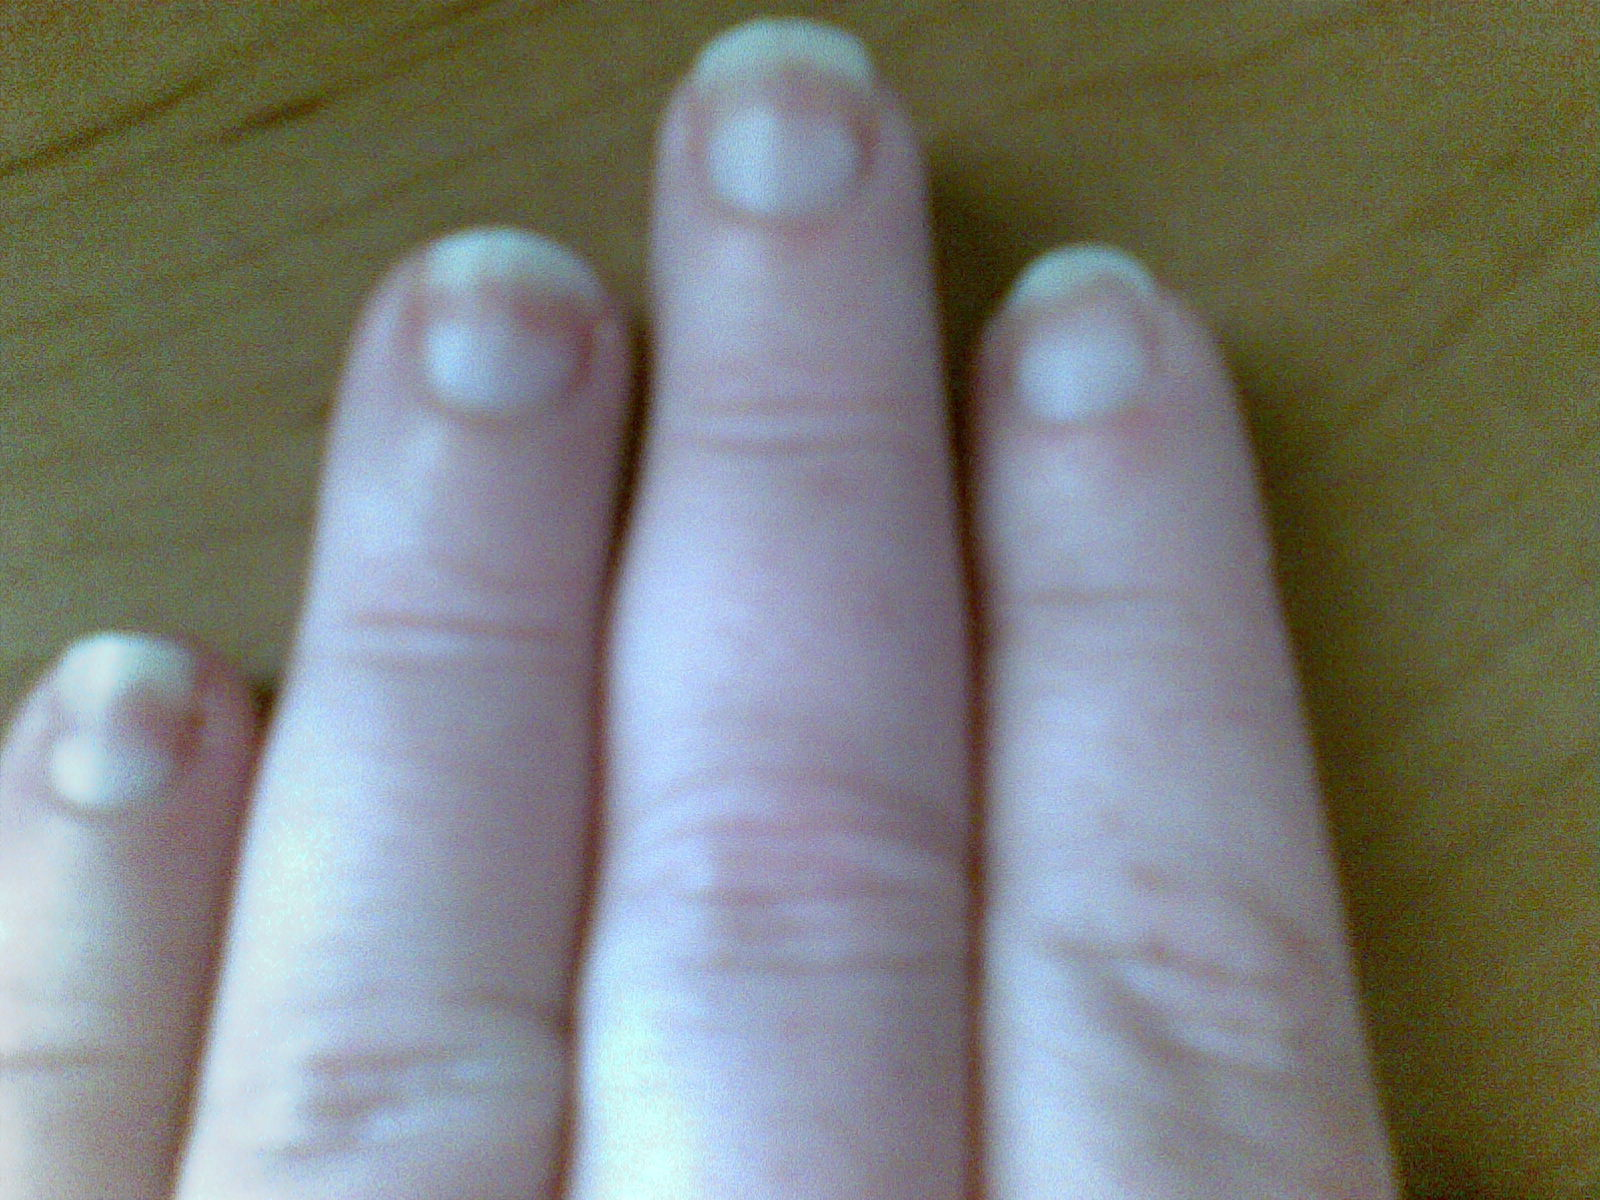 See How The Pink Part Of My Nails Is Turning White Crawling Up A Little Every Week If You Google Nail Beds Get Heart Or